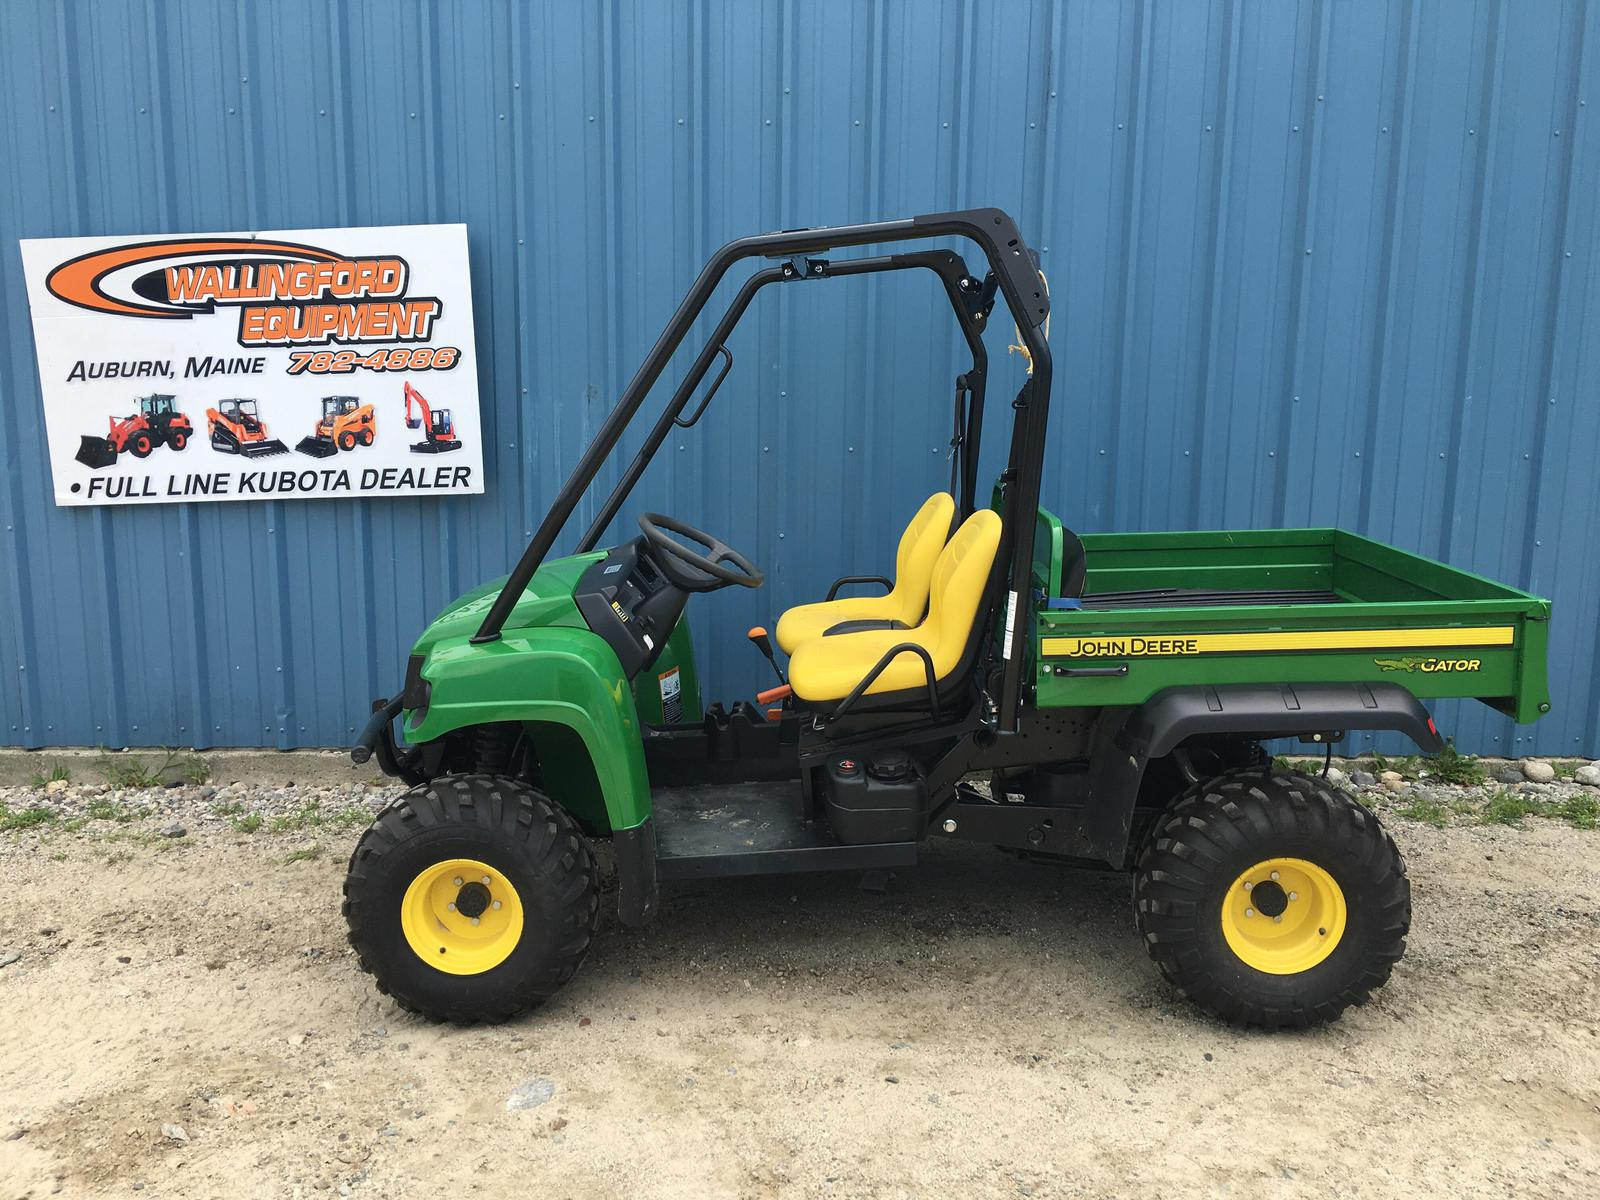 2013 john deere gator hpx 4x4 for sale in auburn, me. wallingford